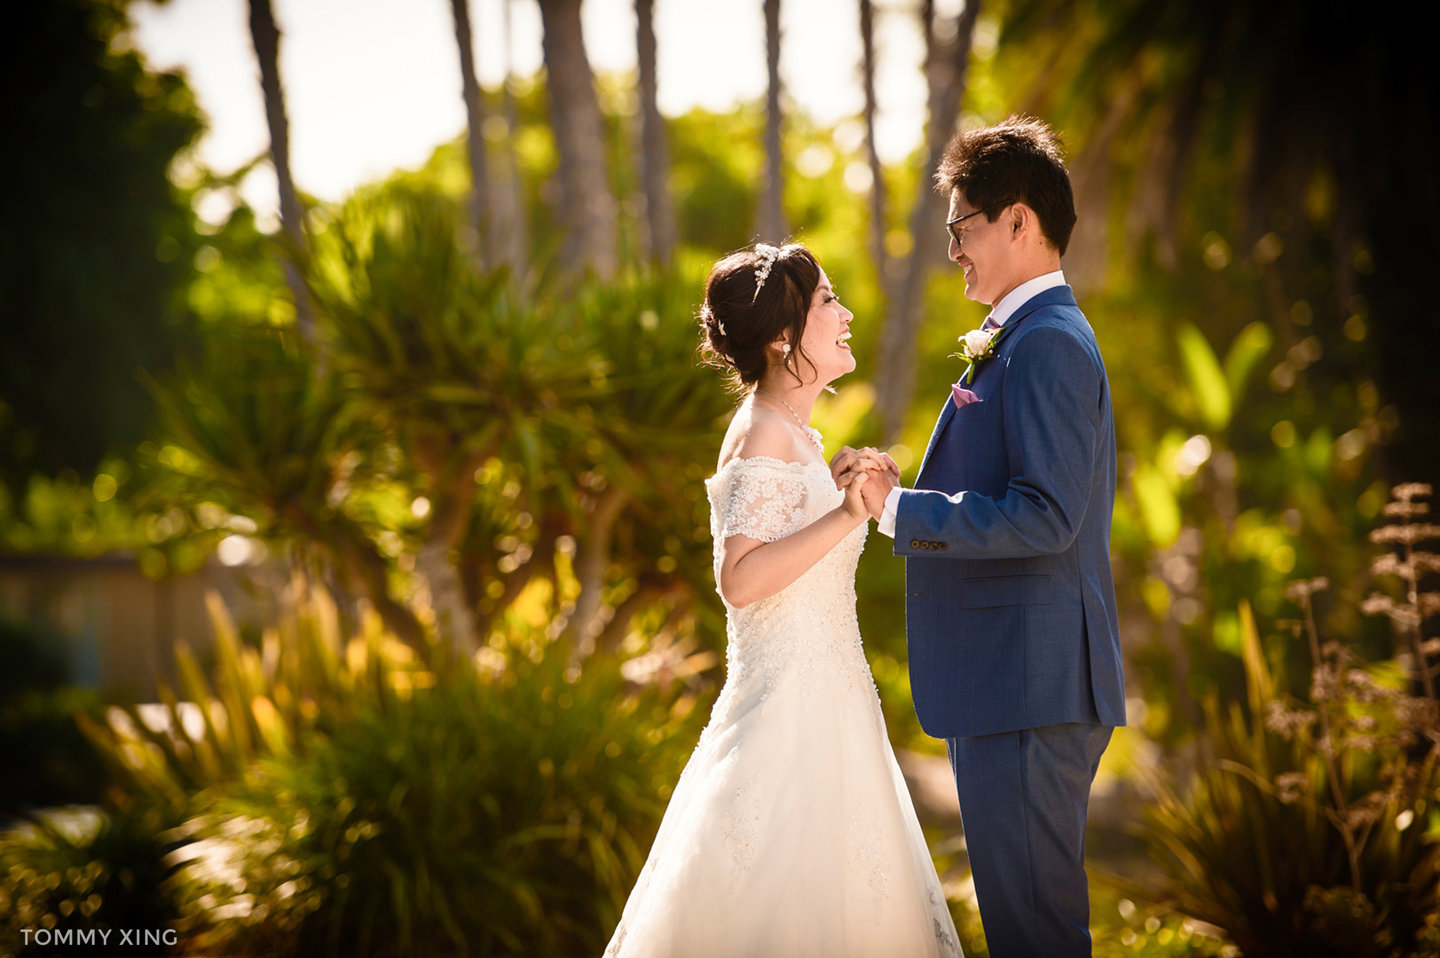 Paradise Point Resort Wedding Xiaolu & Bin San Diego 圣地亚哥婚礼摄影跟拍 Tommy Xing Photography 洛杉矶婚礼婚纱照摄影师 067.jpg